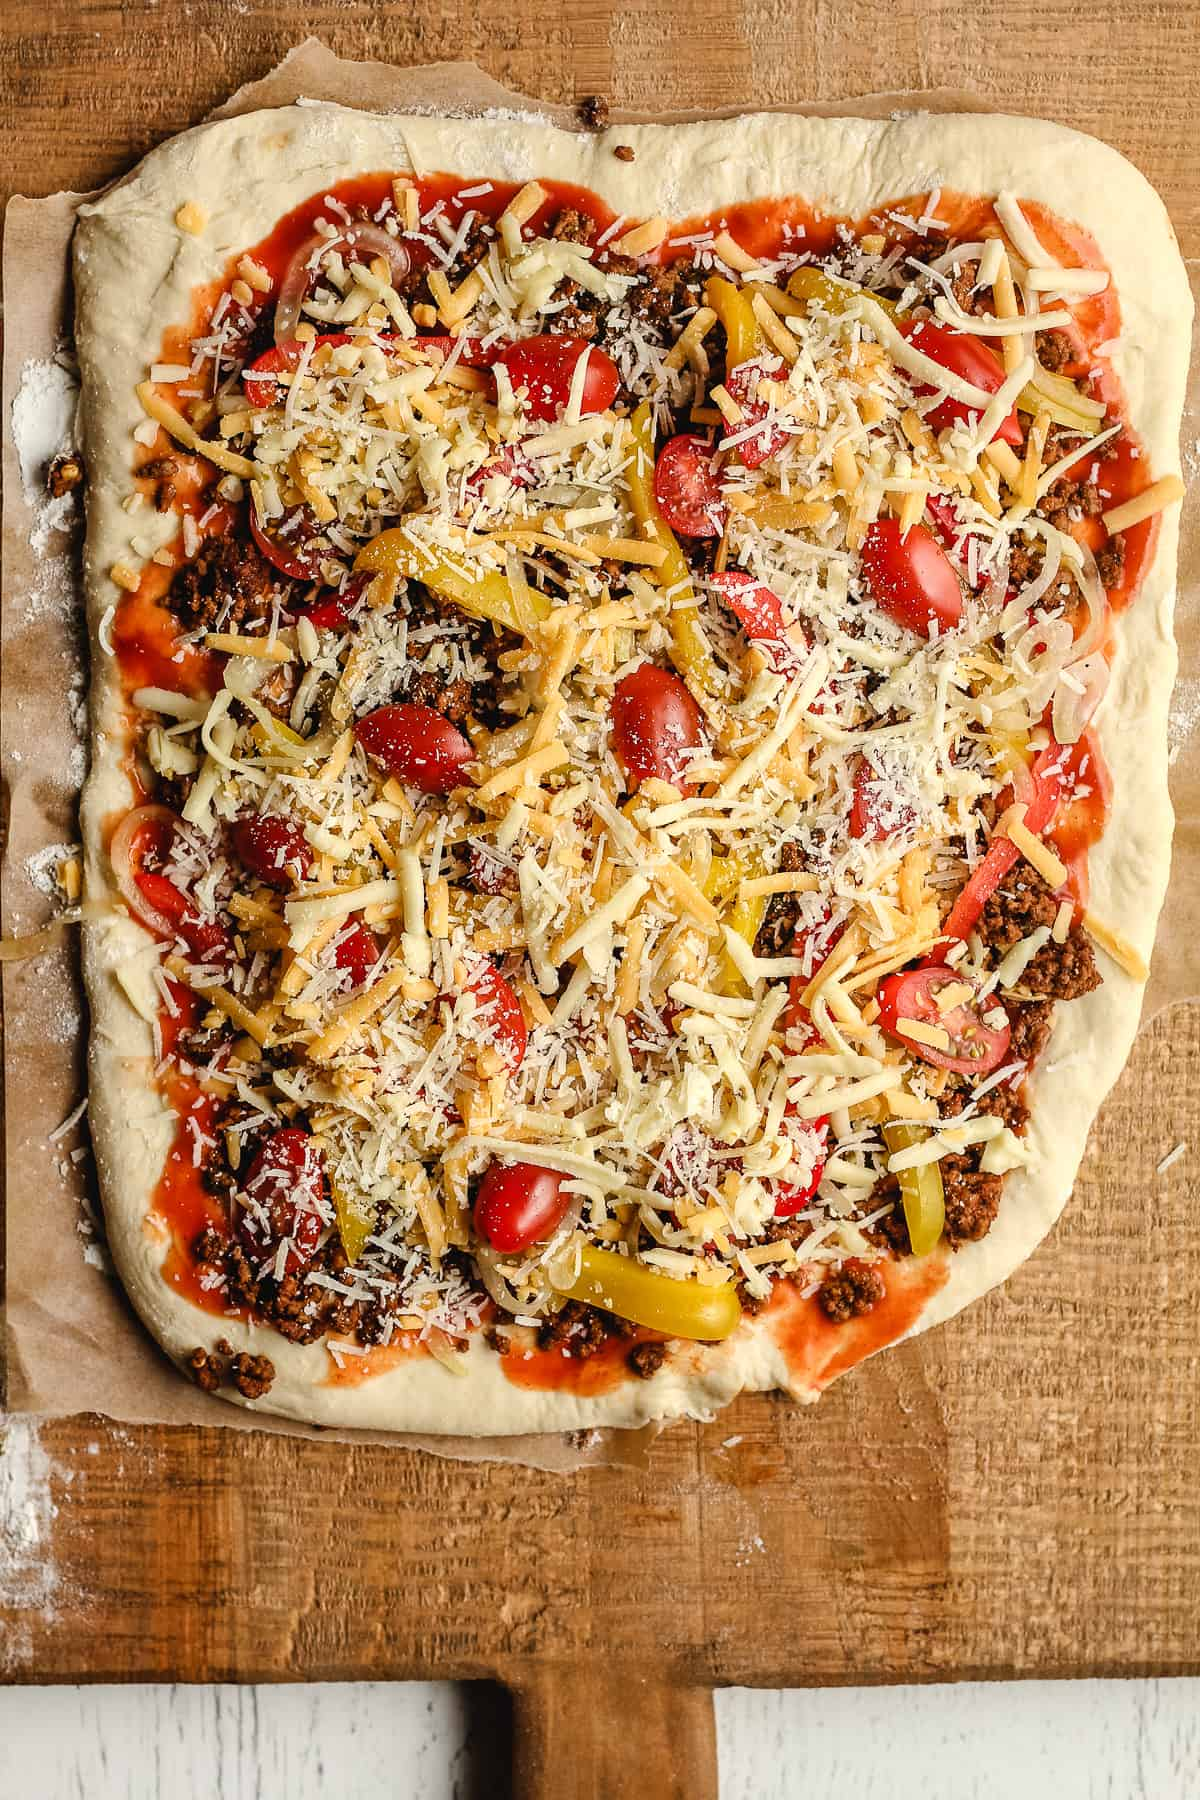 Unbaked taco pizza.